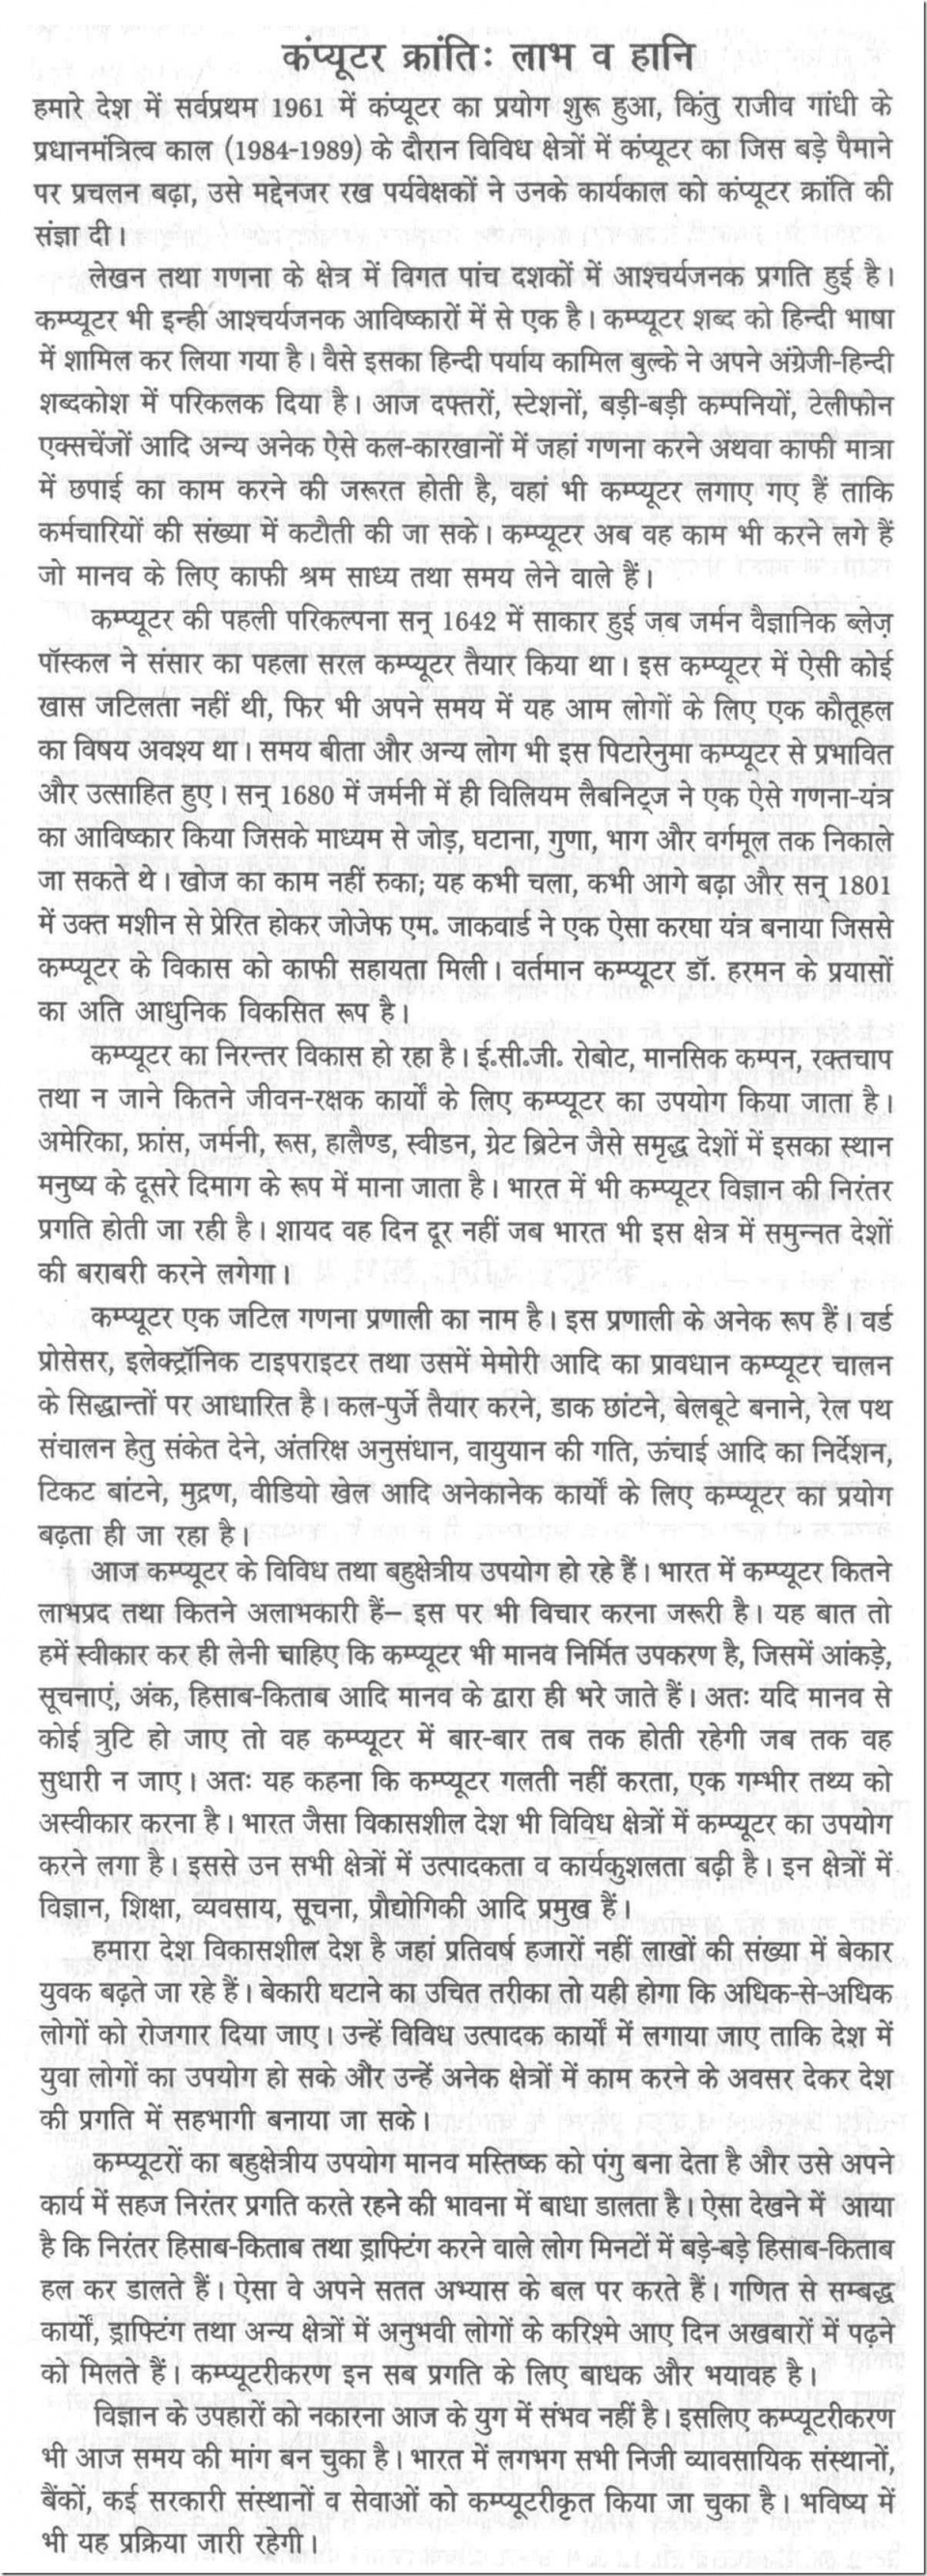 007 Essay Example 10008 Thumb Advantage And Disadvantage Of Shocking Science Advantages Disadvantages Pdf In Hindi English 960